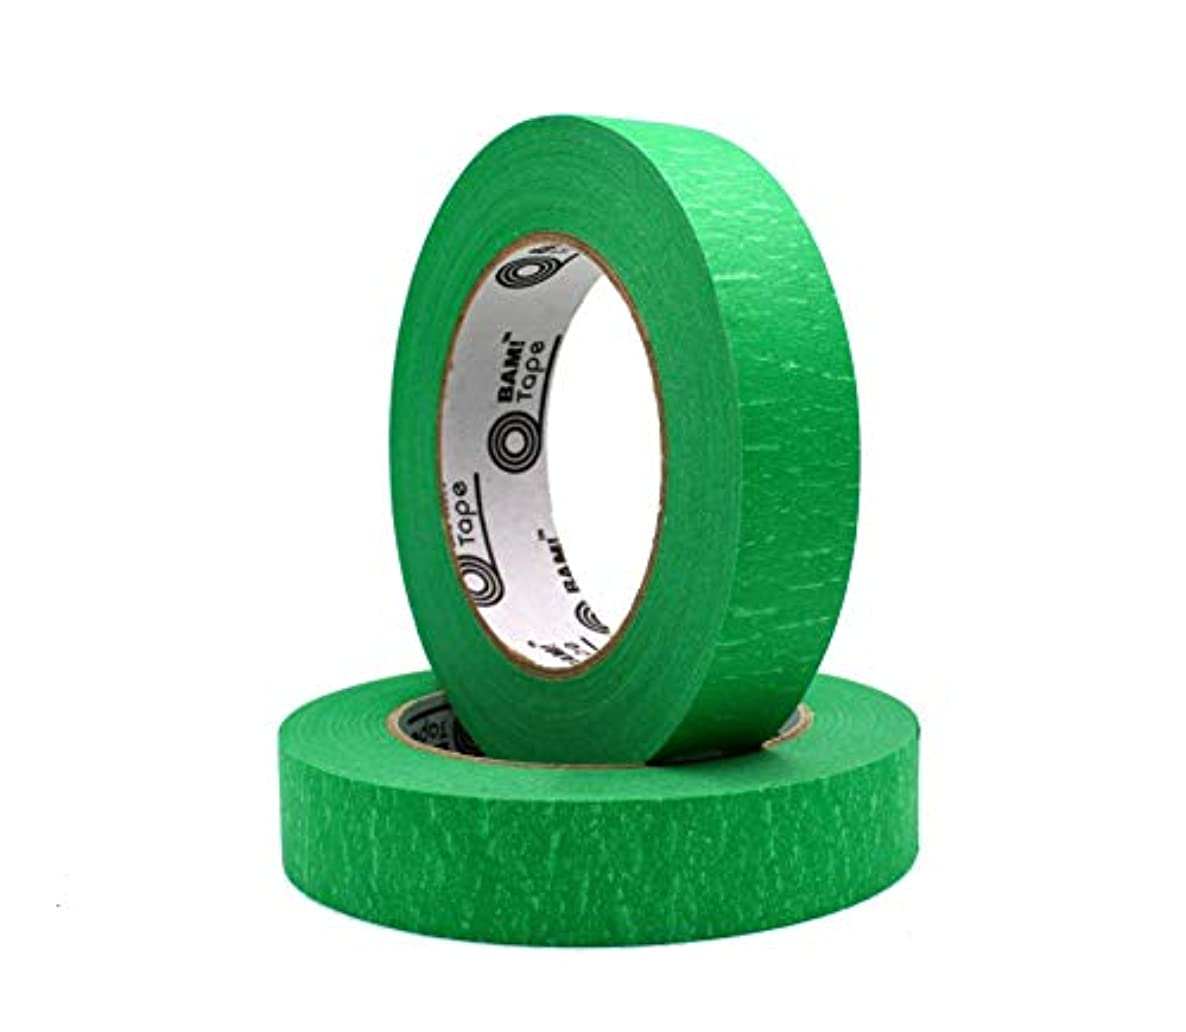 Green Colored Masking Tape - 2 Large Rolls - 1 inch x 60 Yard Rolls - for Kids Toddlers Adults Teachers - Fun Crafts DIY Projects Science Math Art STEM STEAM